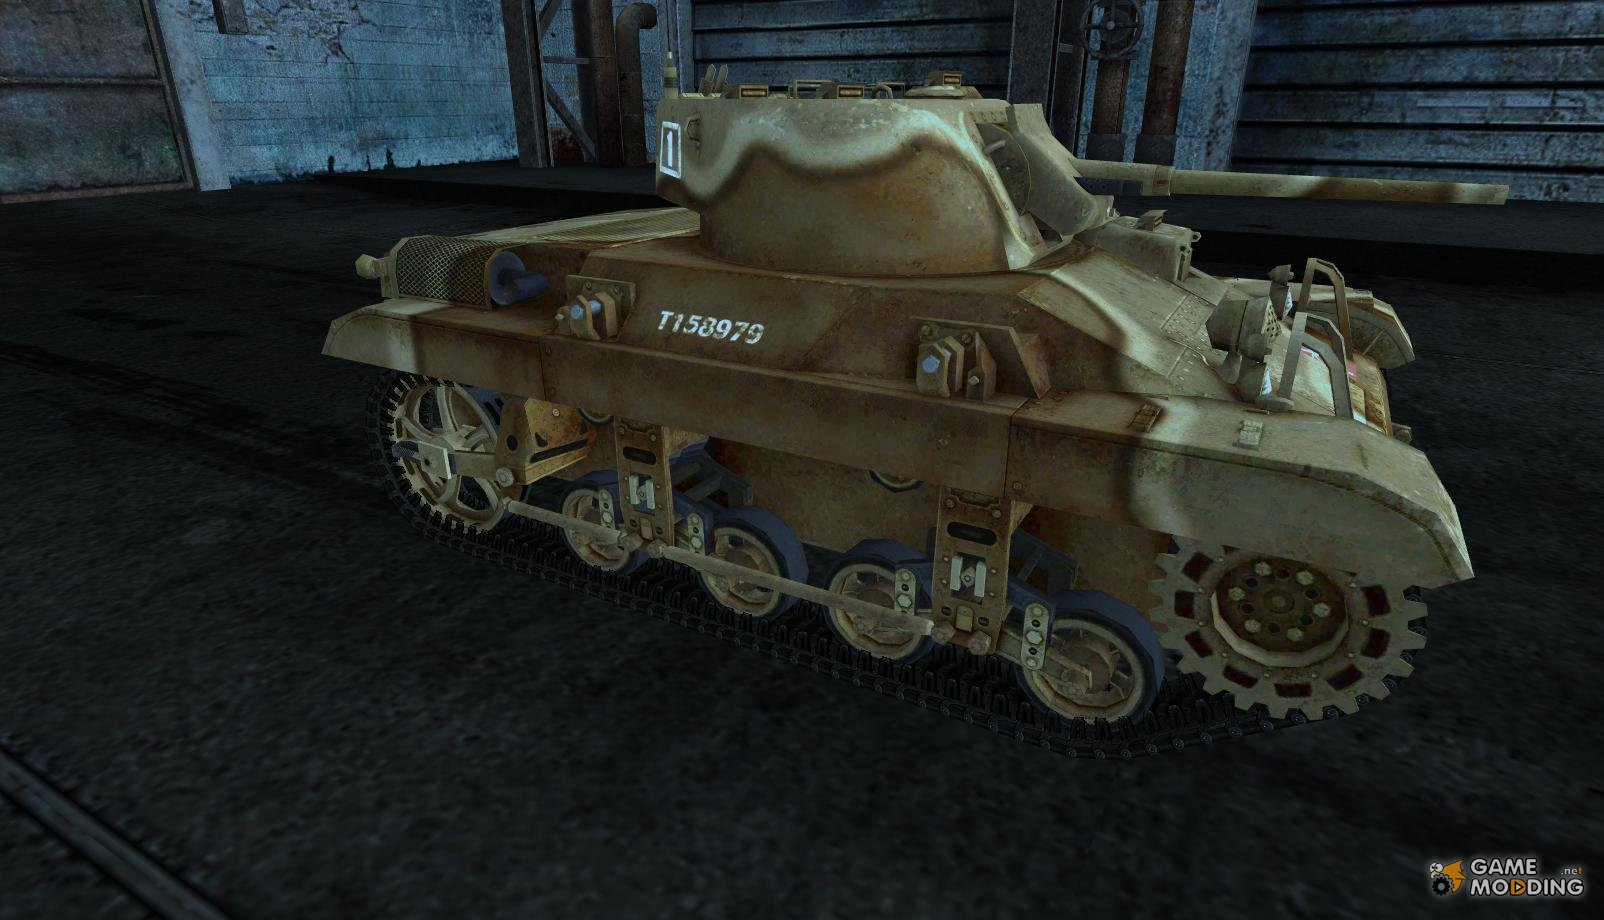 wot tetrarch matchmaking Guide to crew rank, qualifications, skills, and experience in world of tanks, your crew plays an important role in improving the combat effectiveness of your vehicle.